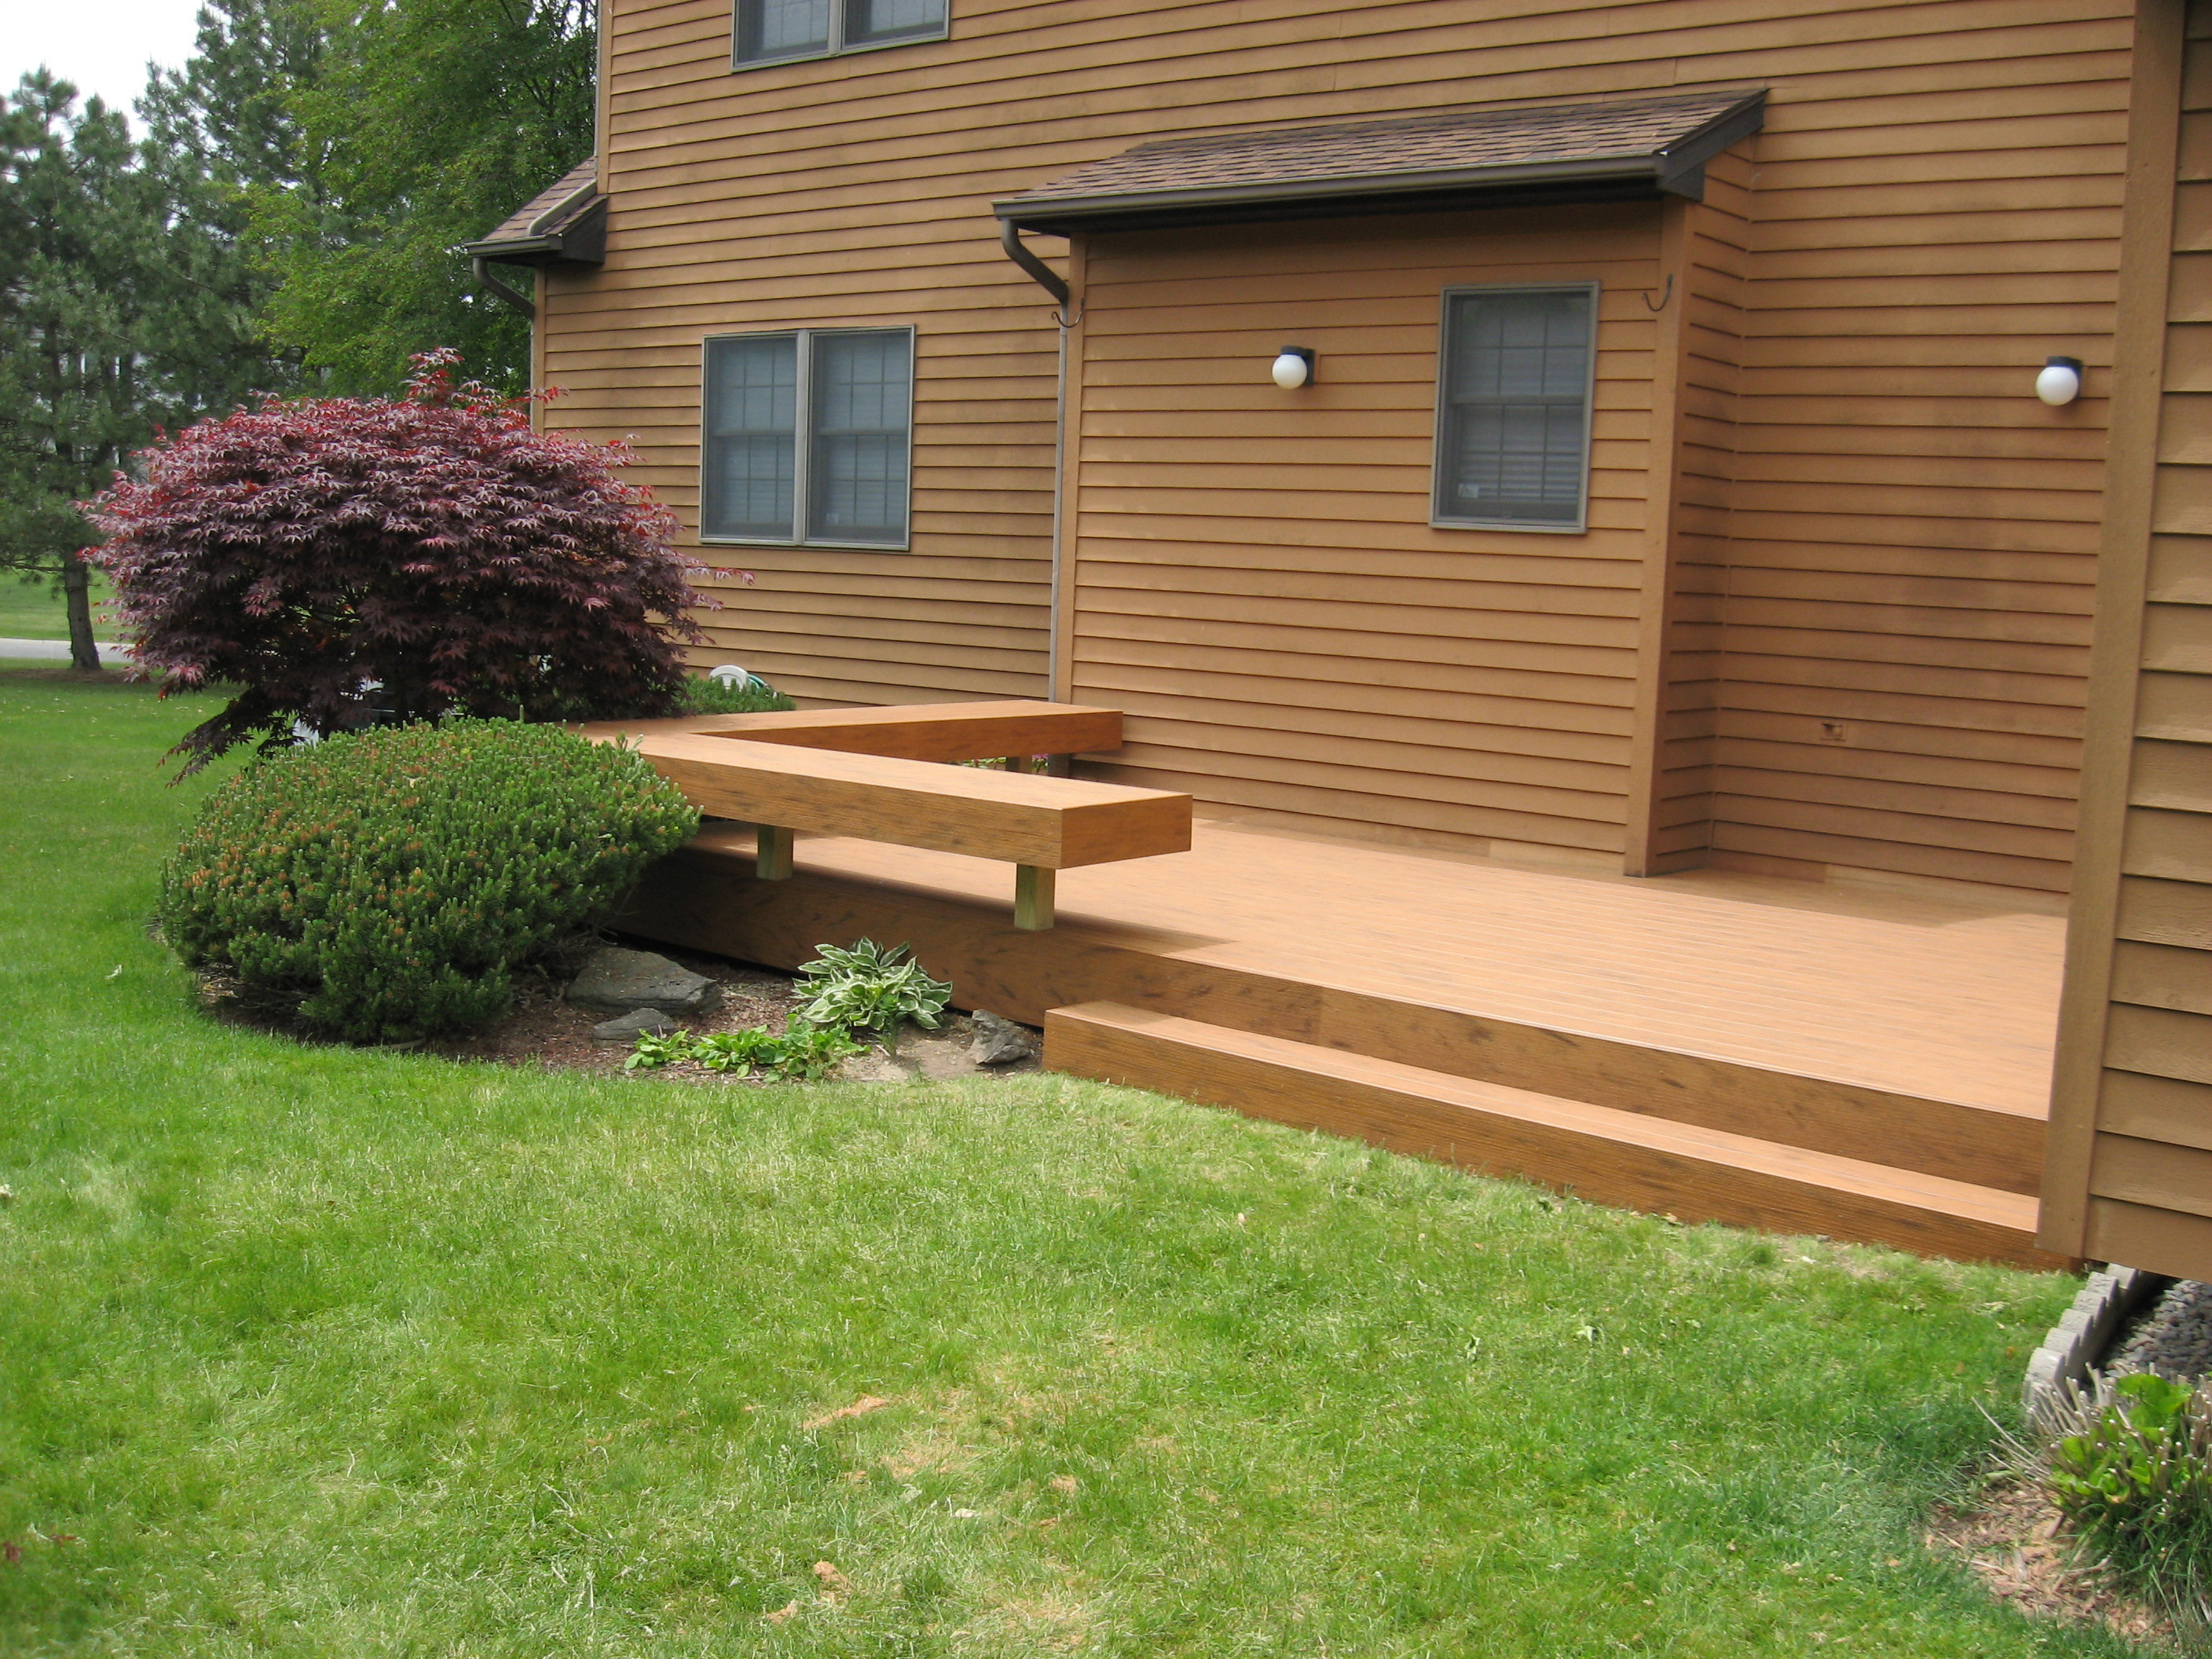 Ground deck with TimberTech deckboards, trimboards, and matching bench seating